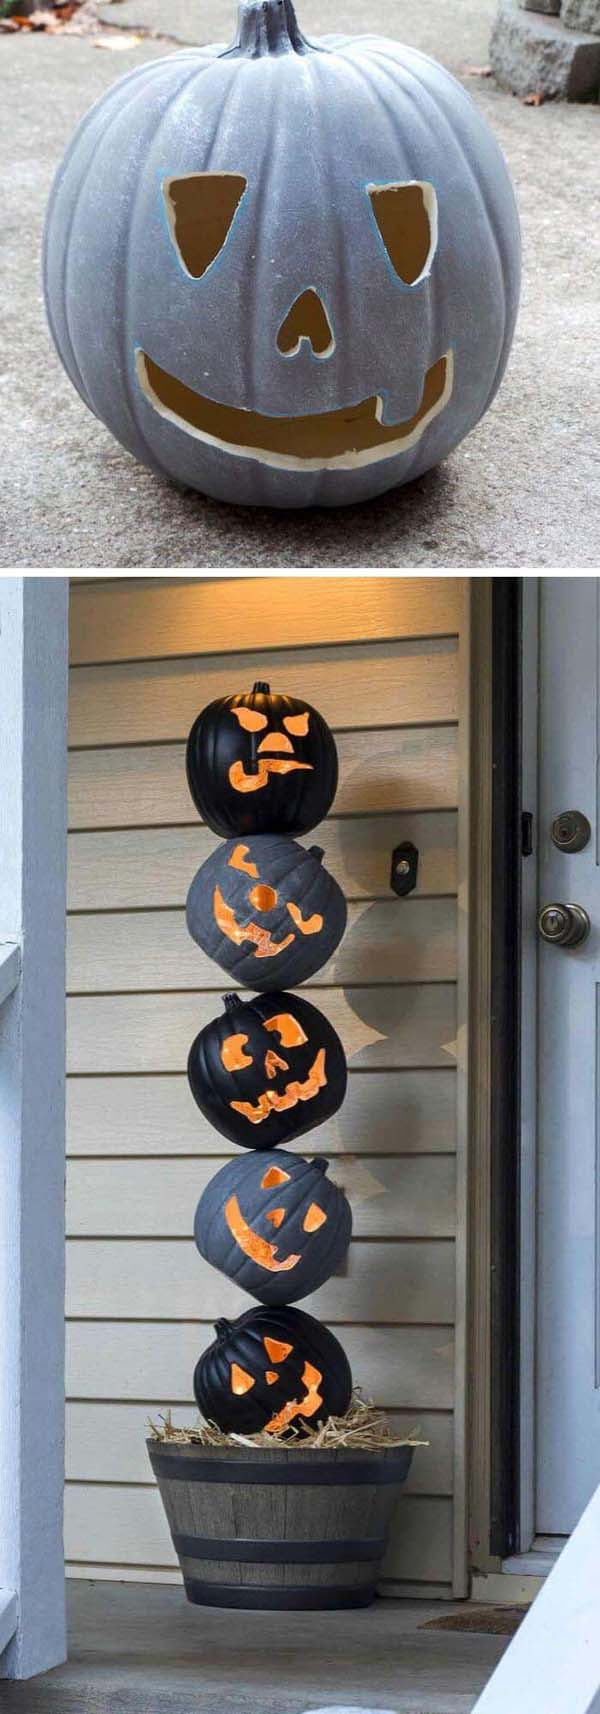 Lighted Pumpkin Topiary for Halloween Front Porch #topiary #halloween #homedecorimage